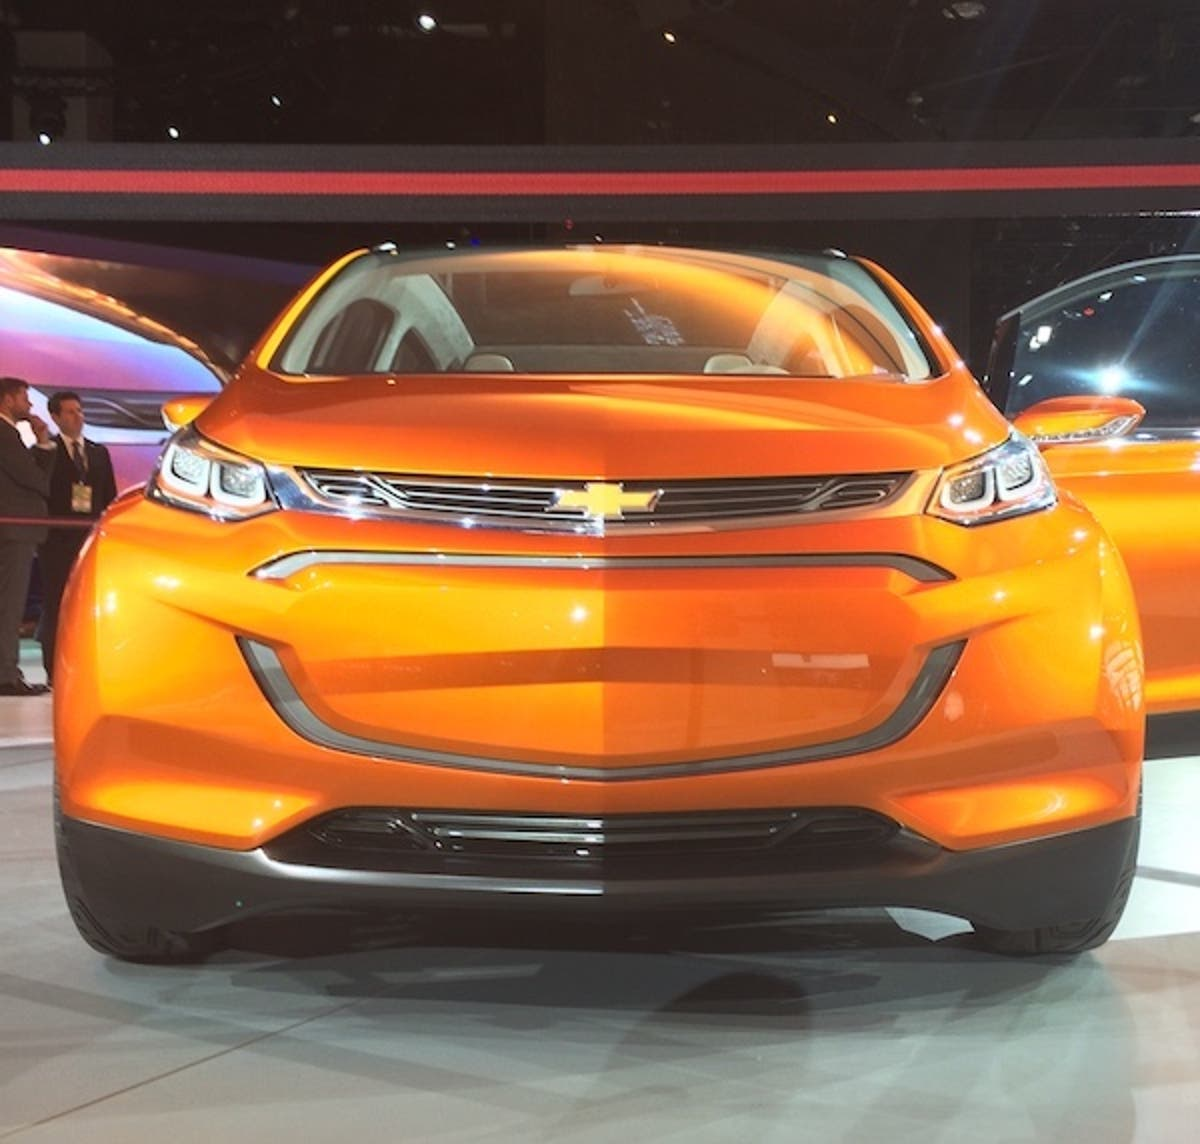 Gm Bails On 2020 Ces May Have Electric Hummer In The